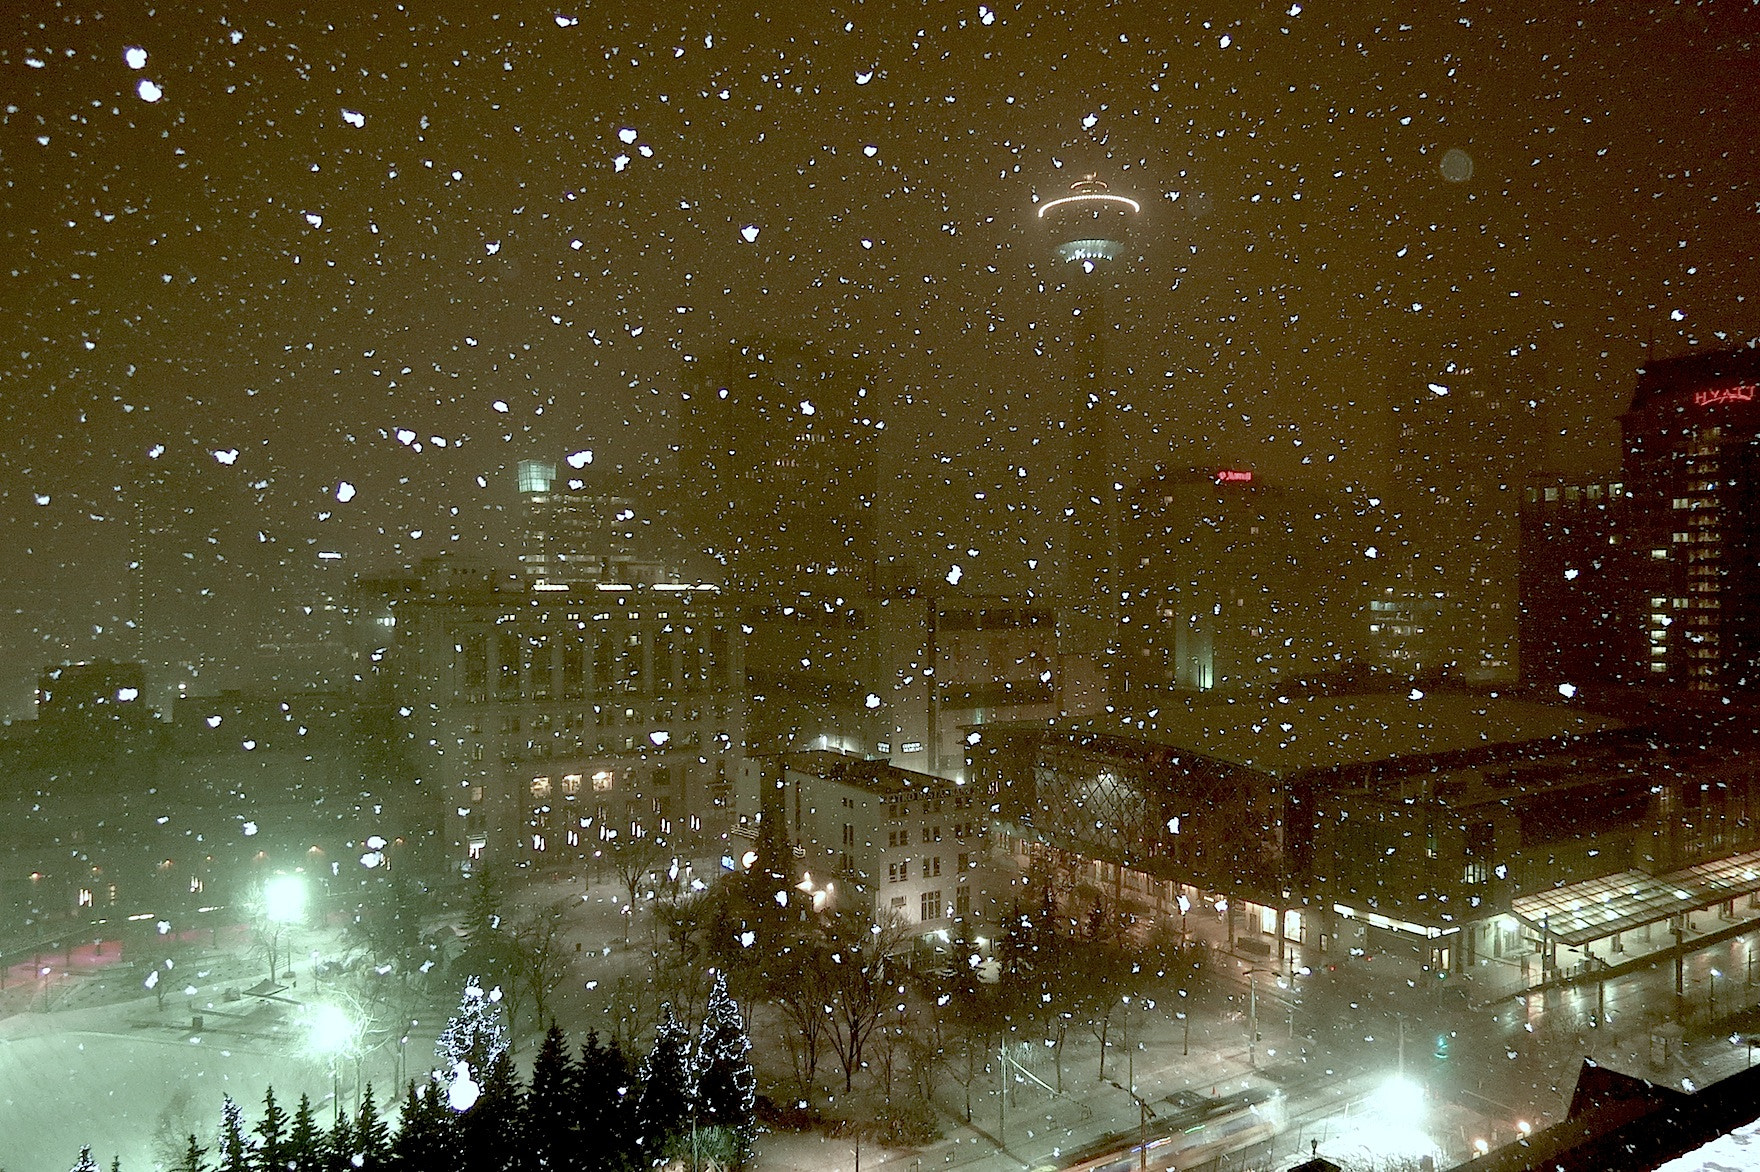 Photograph Calgary Snowglobe by Weeb DaCat on 500px